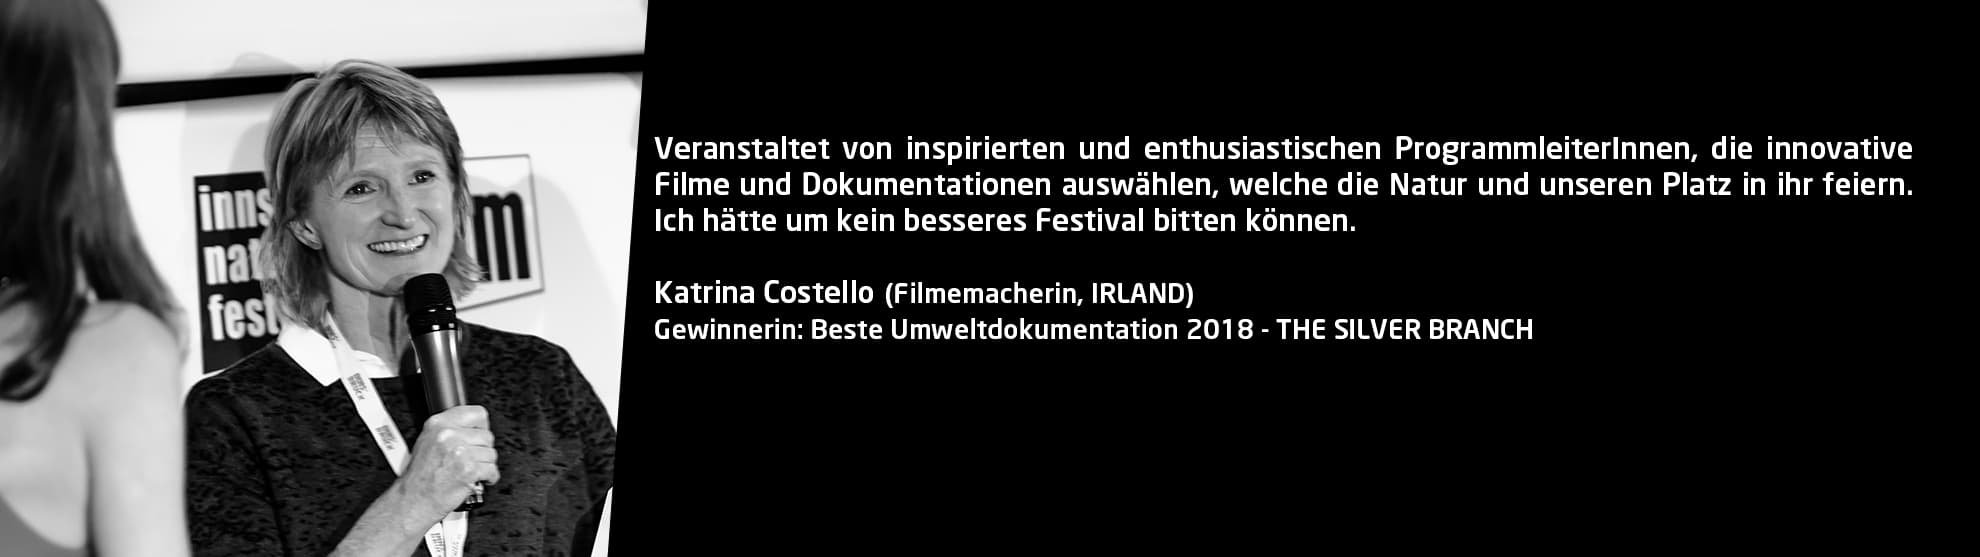 slider-katrina_costello-deutsch